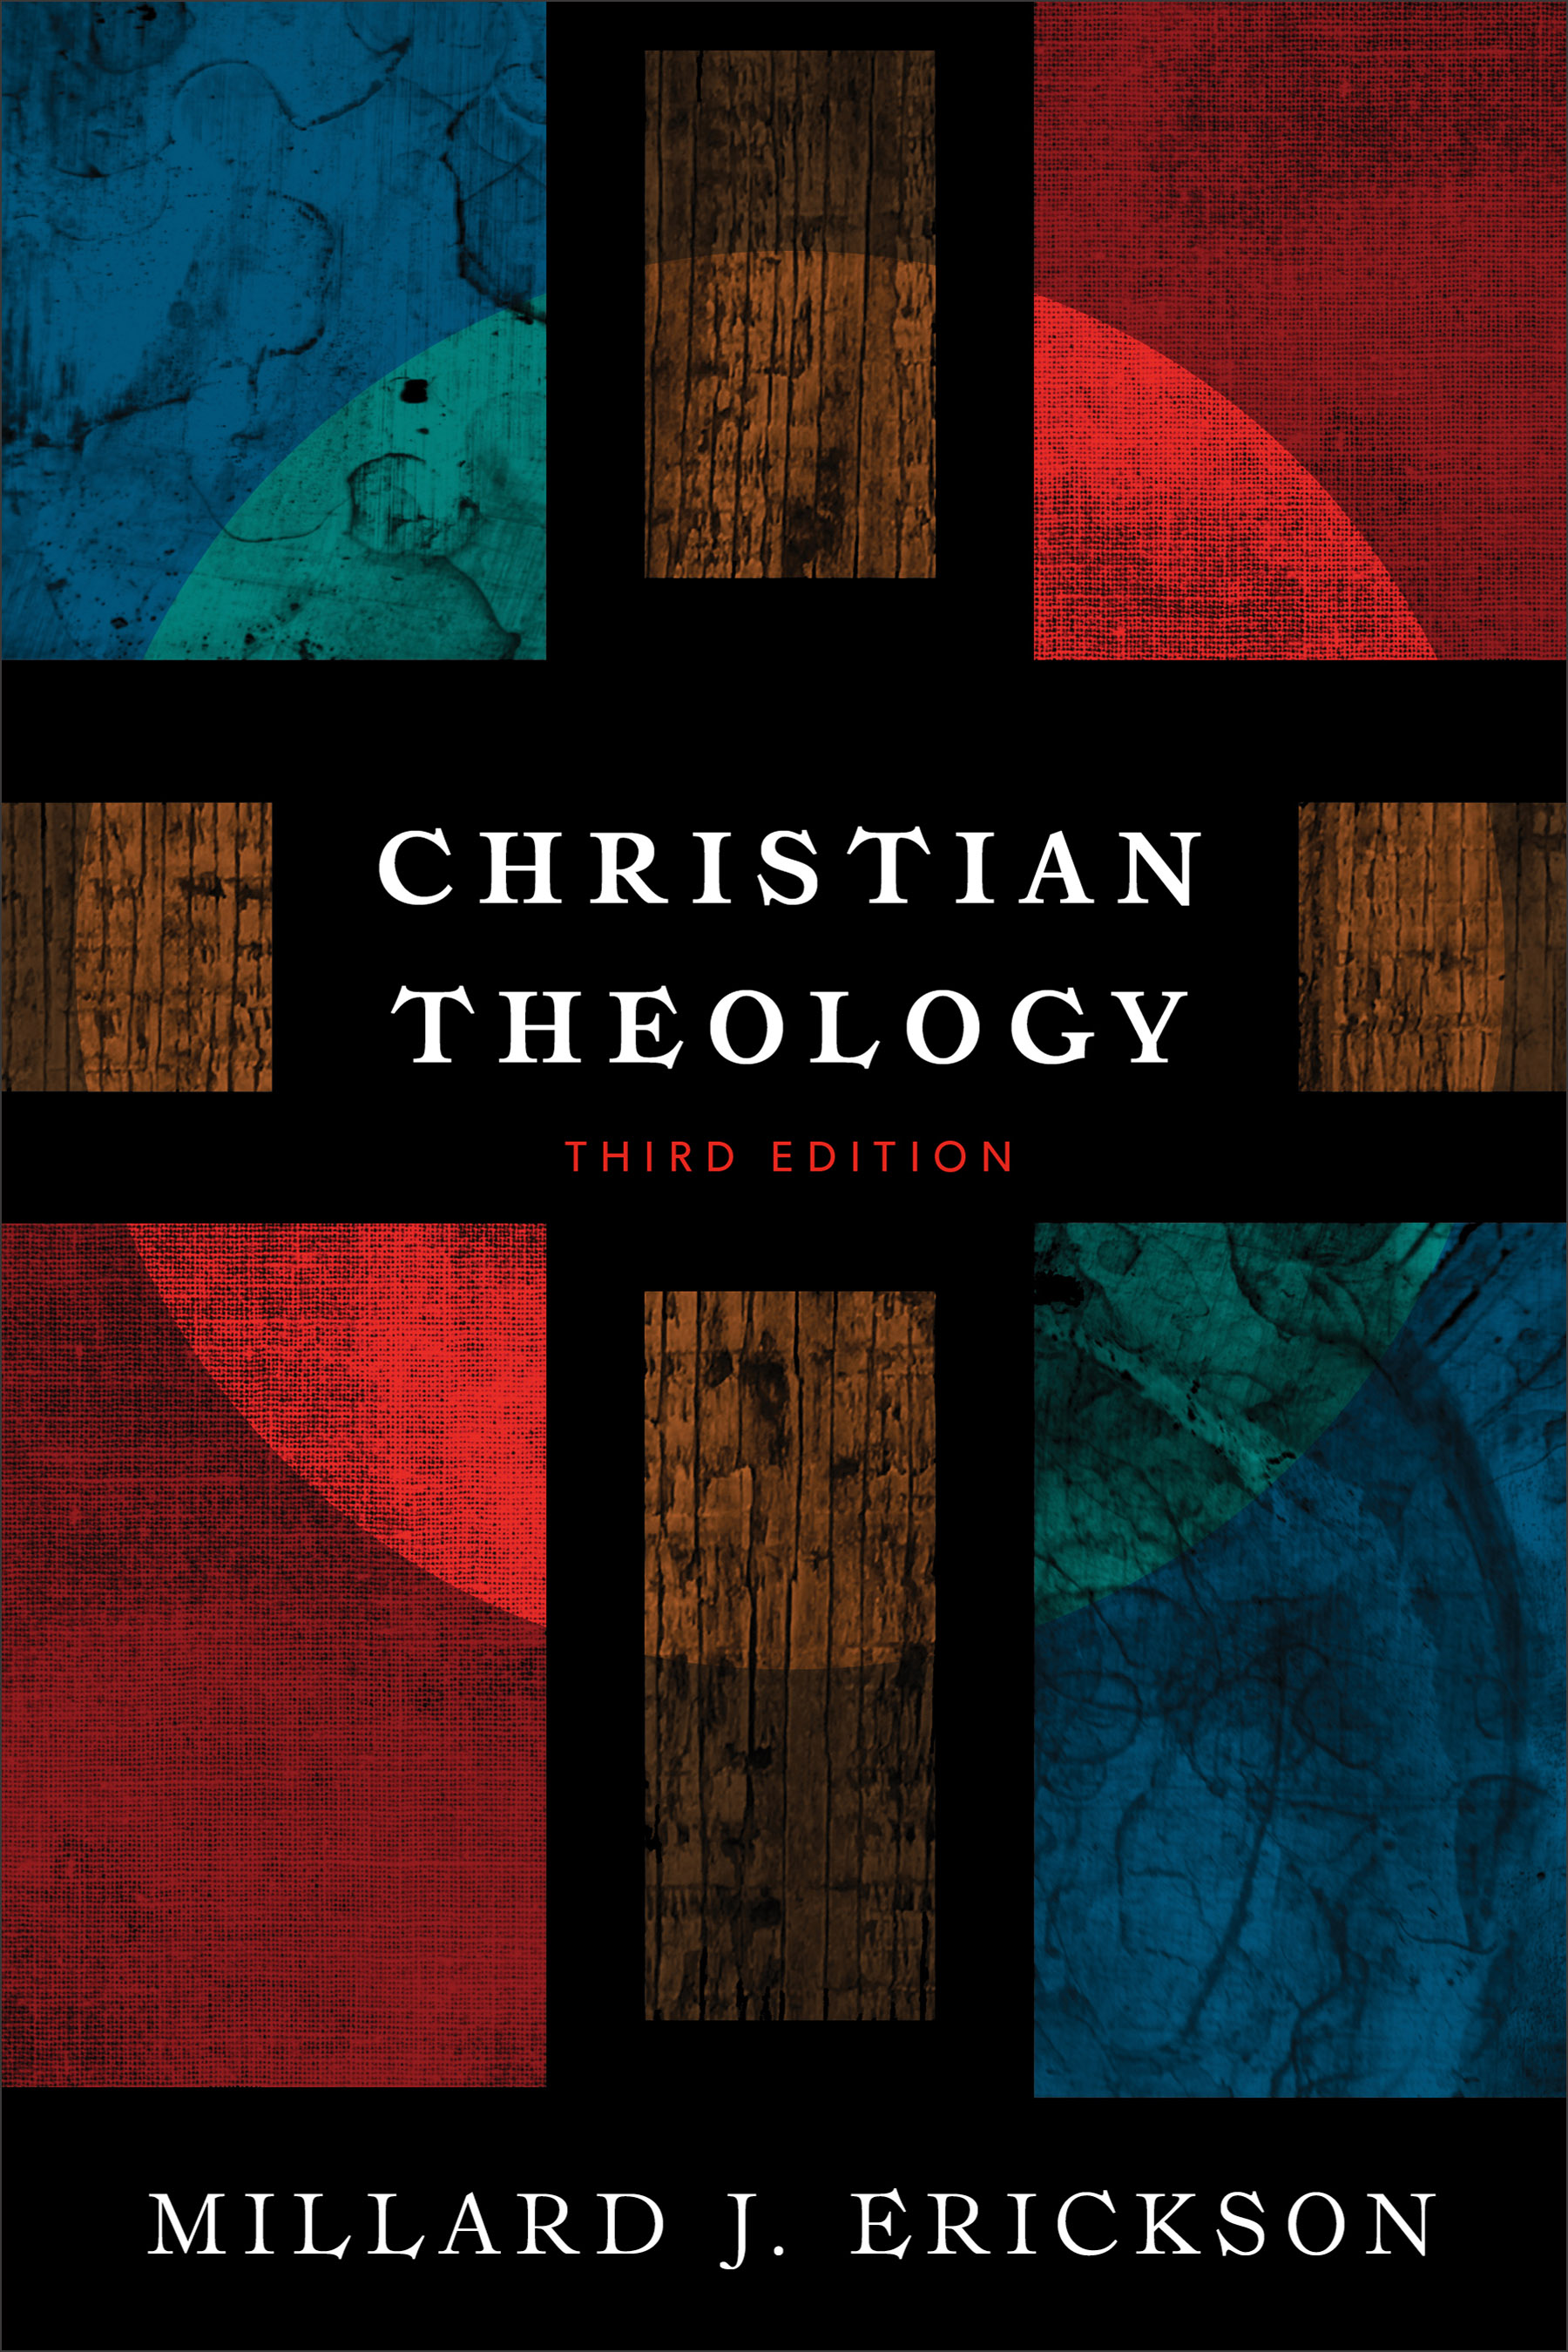 Christian Theology, 3rd Edition | Baker Publishing Group